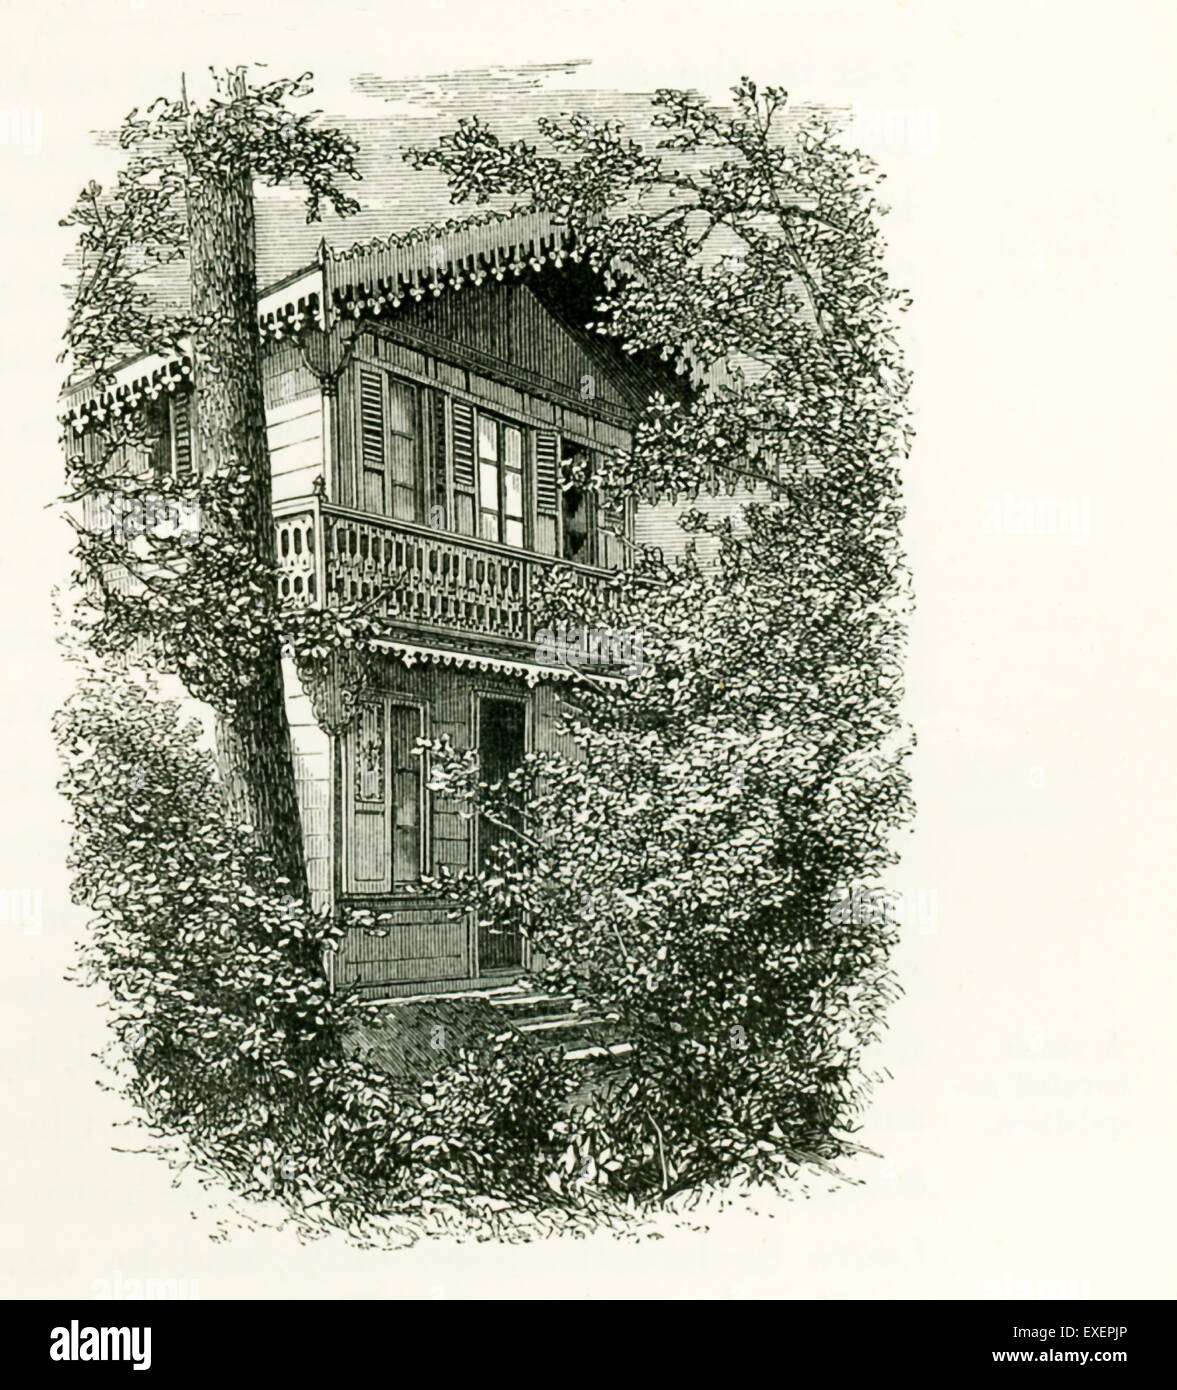 In 1864, the actor Charles Fechter gave Charles Dickens a pre-fabricated two-story Swiss chalet house that Dickens Stock Photo